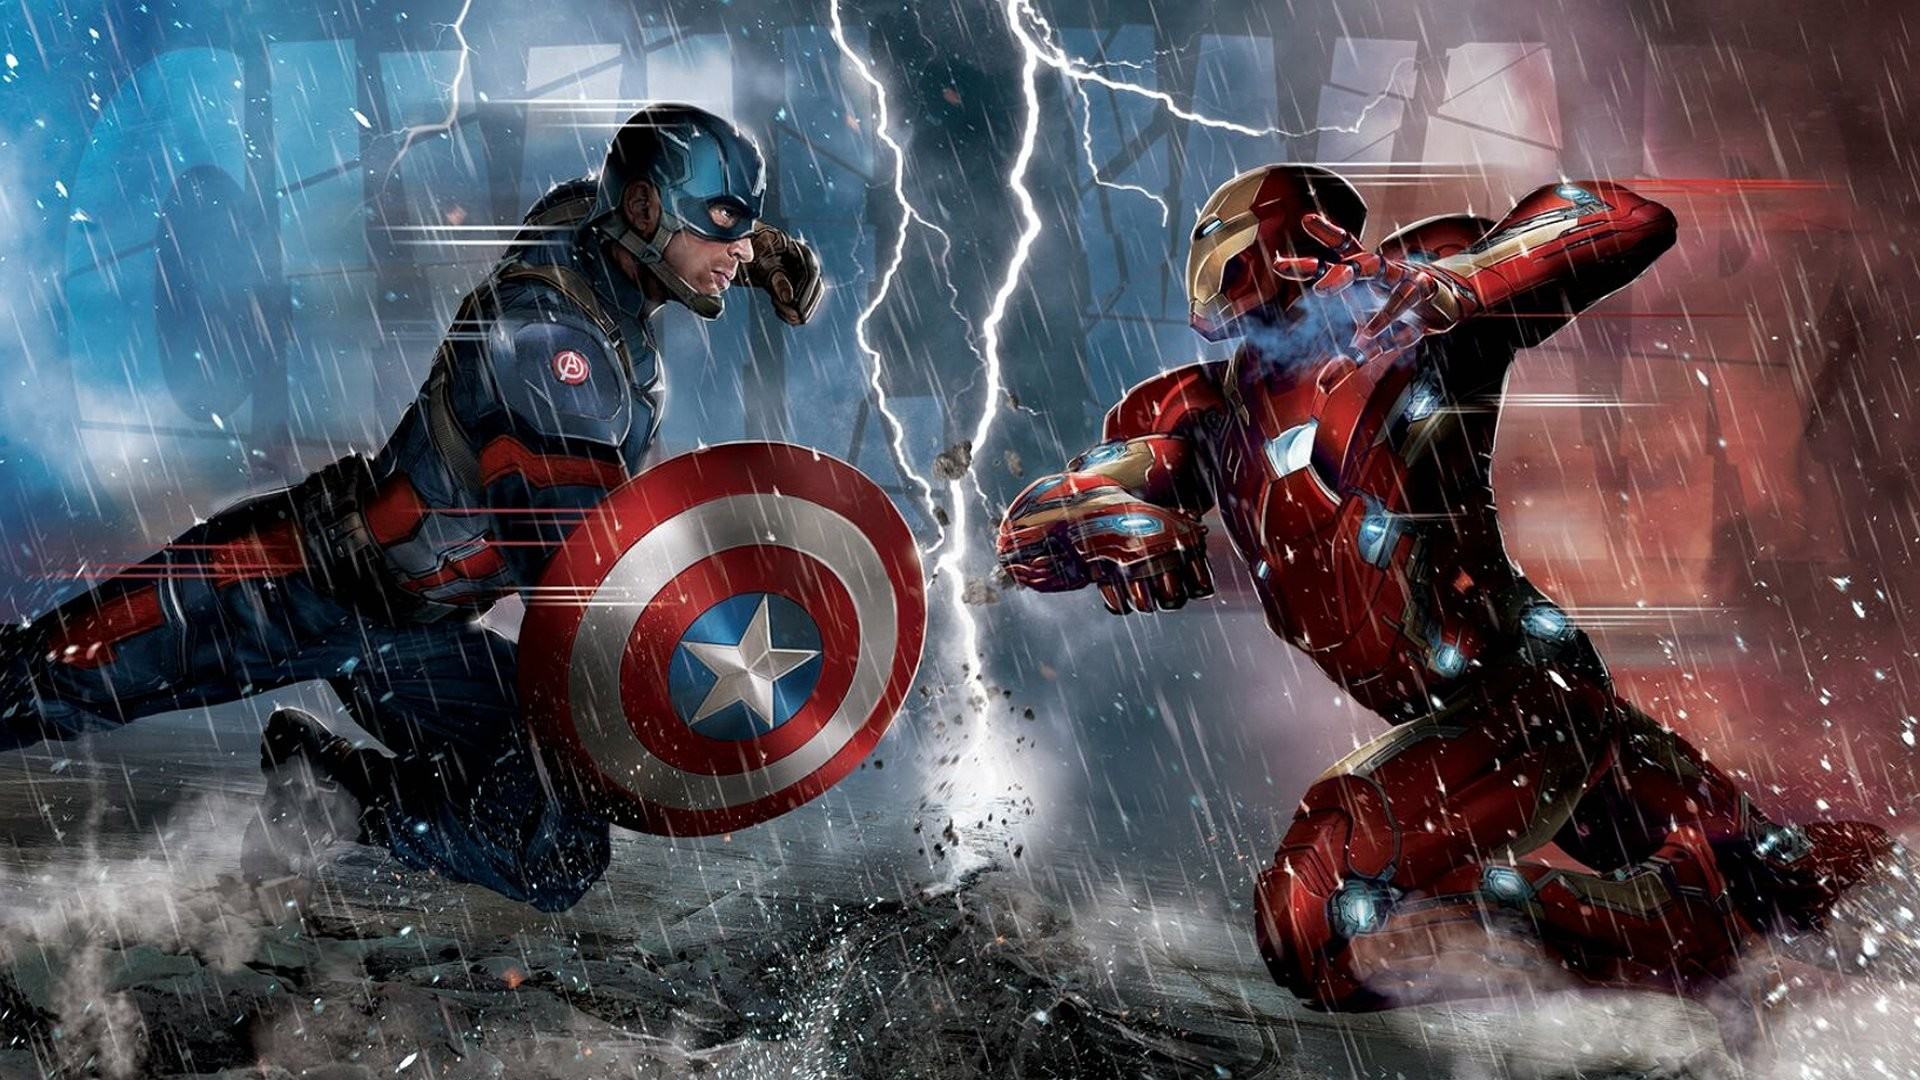 1920x1080 Iron Man and Captain America Civil War K Wallpaper Free K 1024×640 Captain  America Civil War Wallpapers (22 Wallpapers) | Adorable Wallpapers |  Pinterest ...